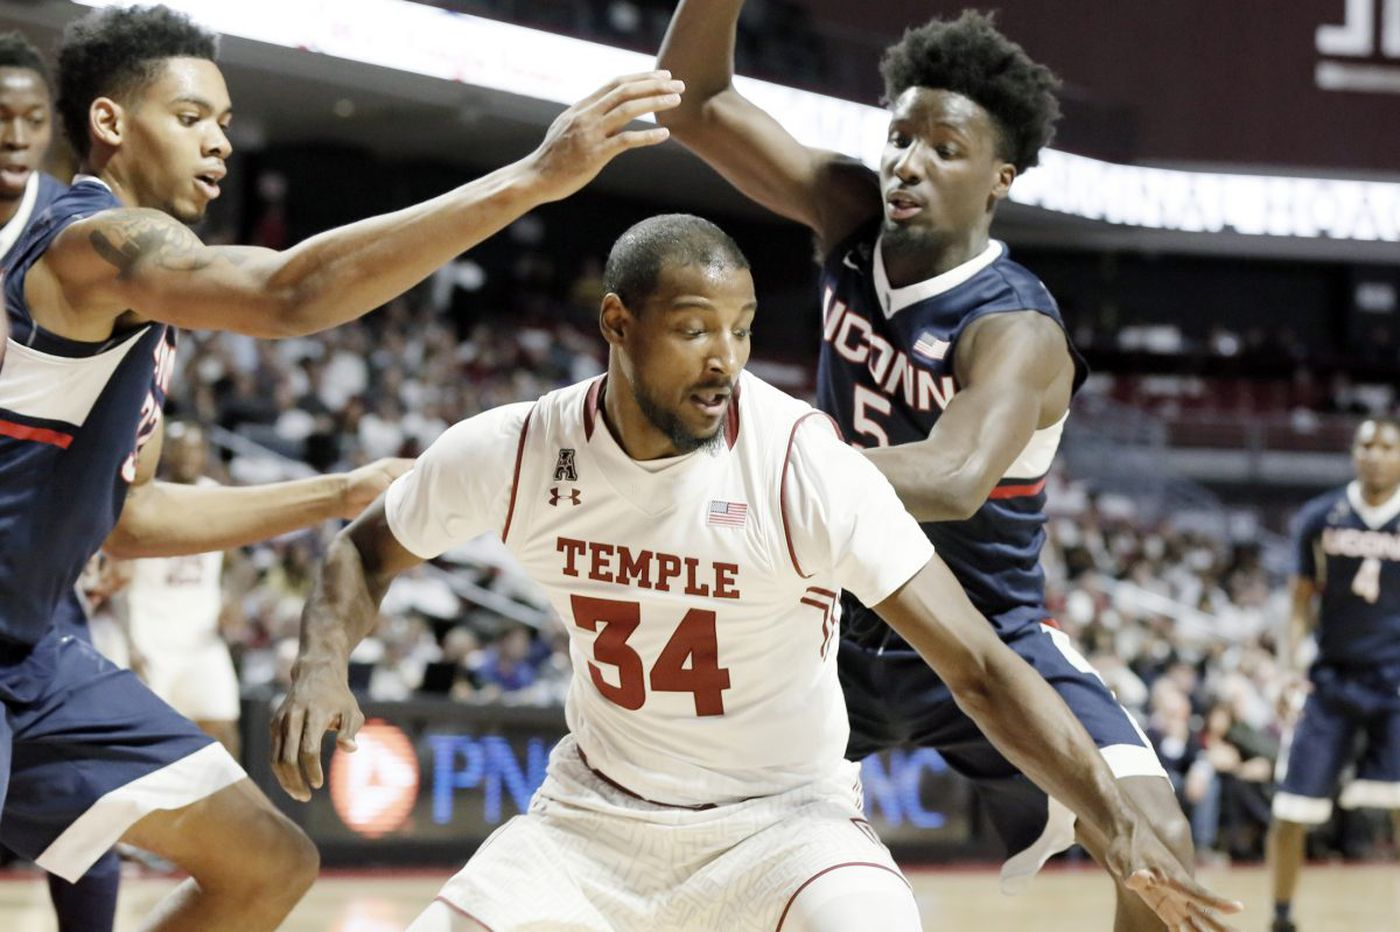 Temple's conference basketball schedule includes Wichita State twice in 15 days